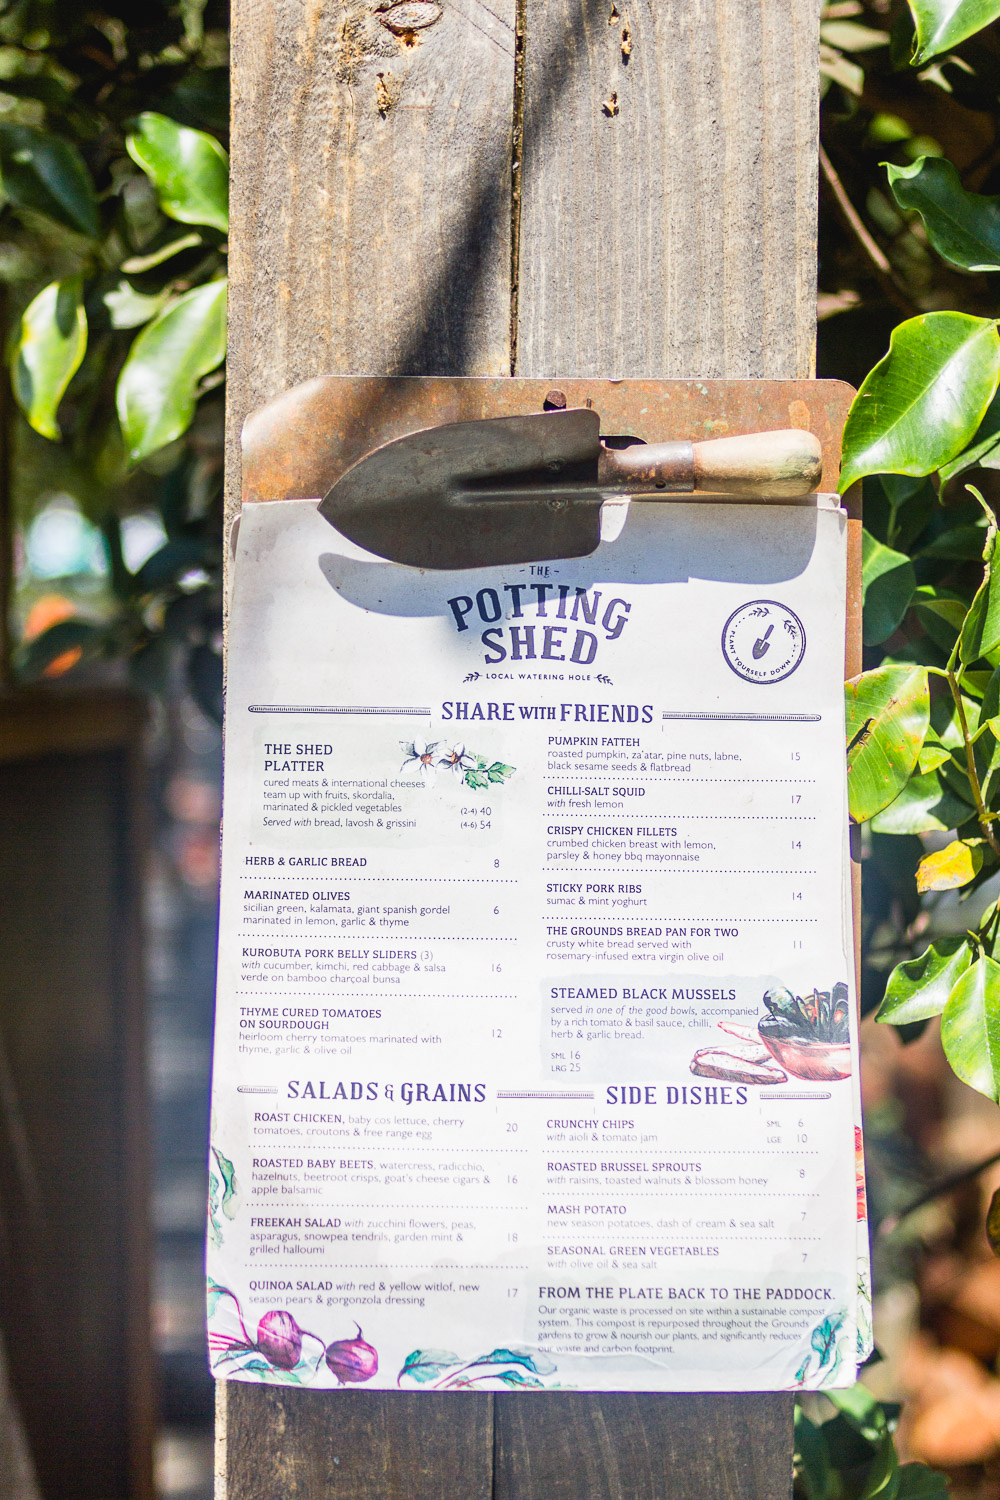 the grounds of alexandria the potting shed menu